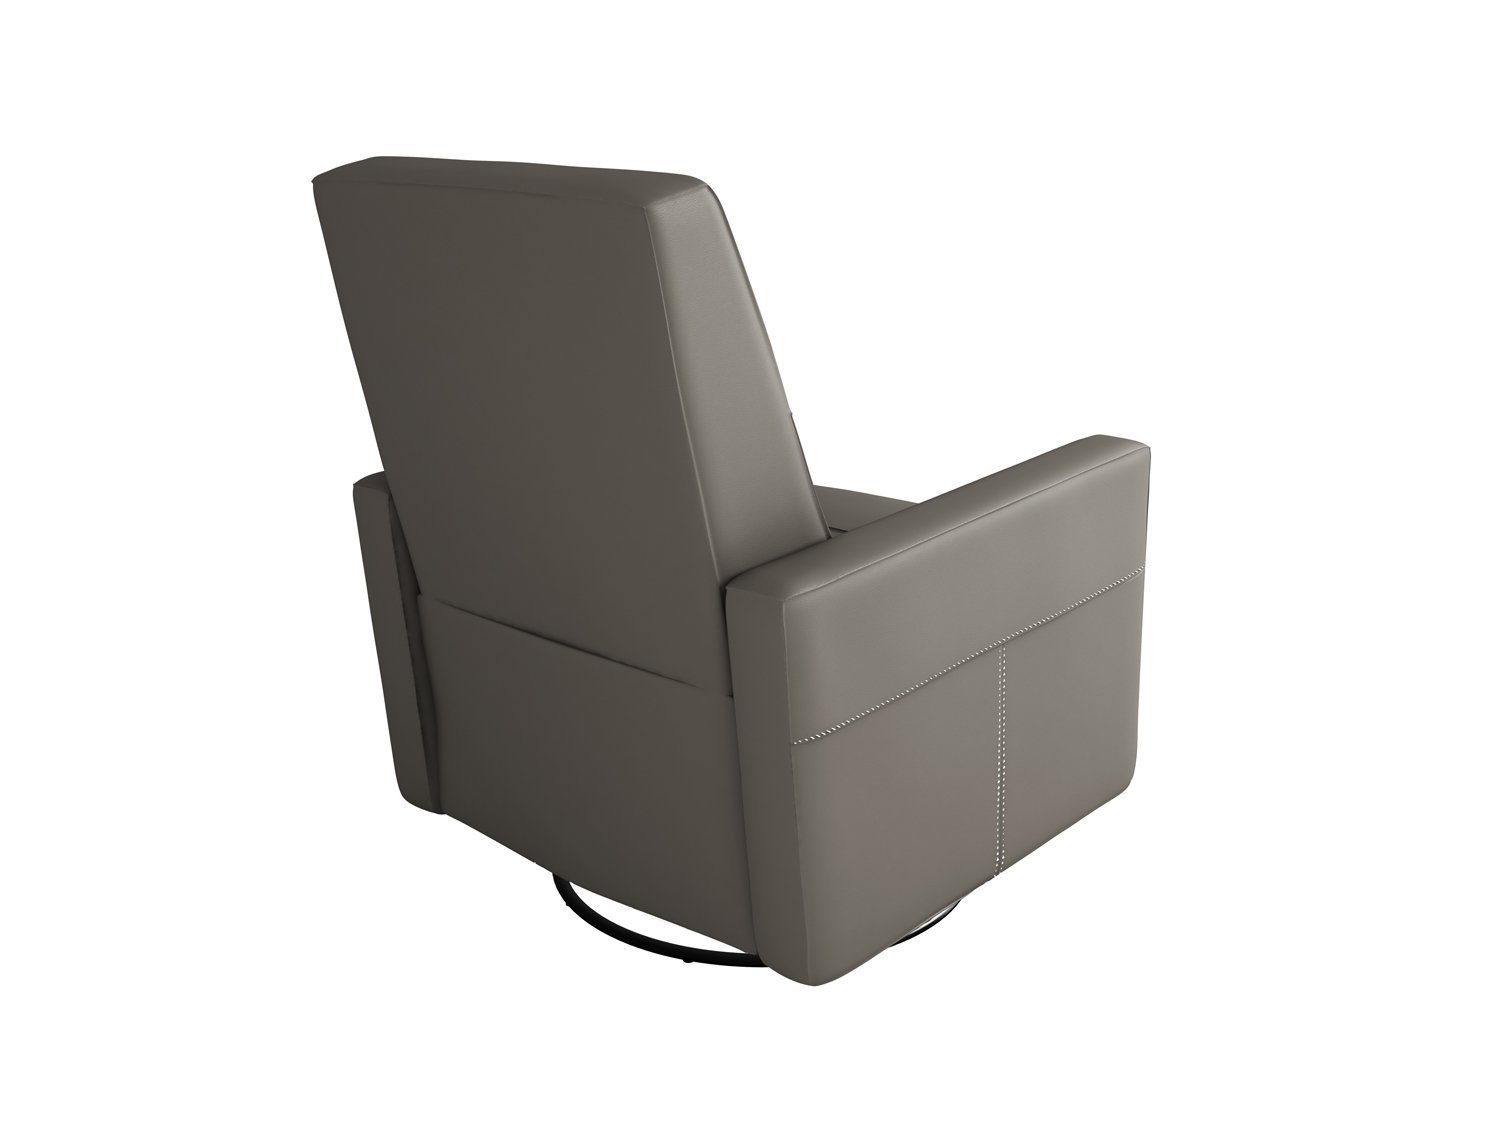 Best Dutailier Ultramotion for Glidder Ideas: Glider Chair Canada | Dutailier Ultramotion | Dutailier Cushion Replacement